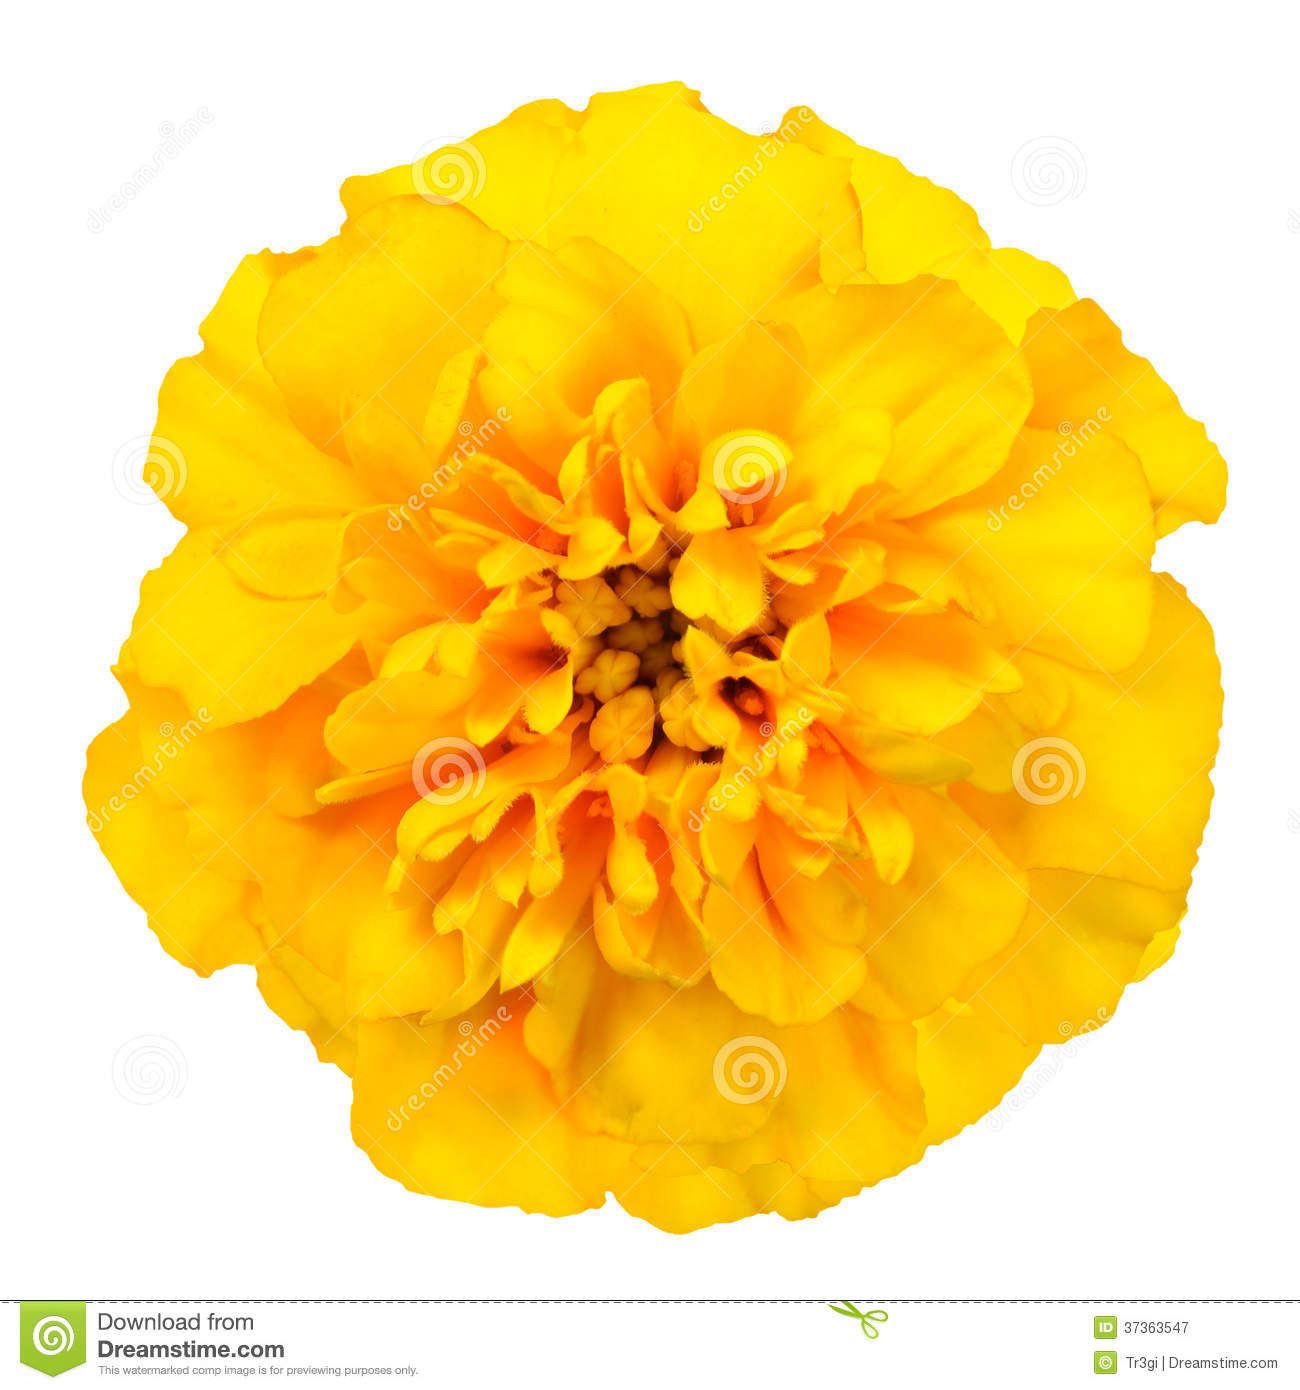 Yellow marigold flower isolated on white background stock image download yellow marigold flower isolated on white background stock image image of single marigold mightylinksfo